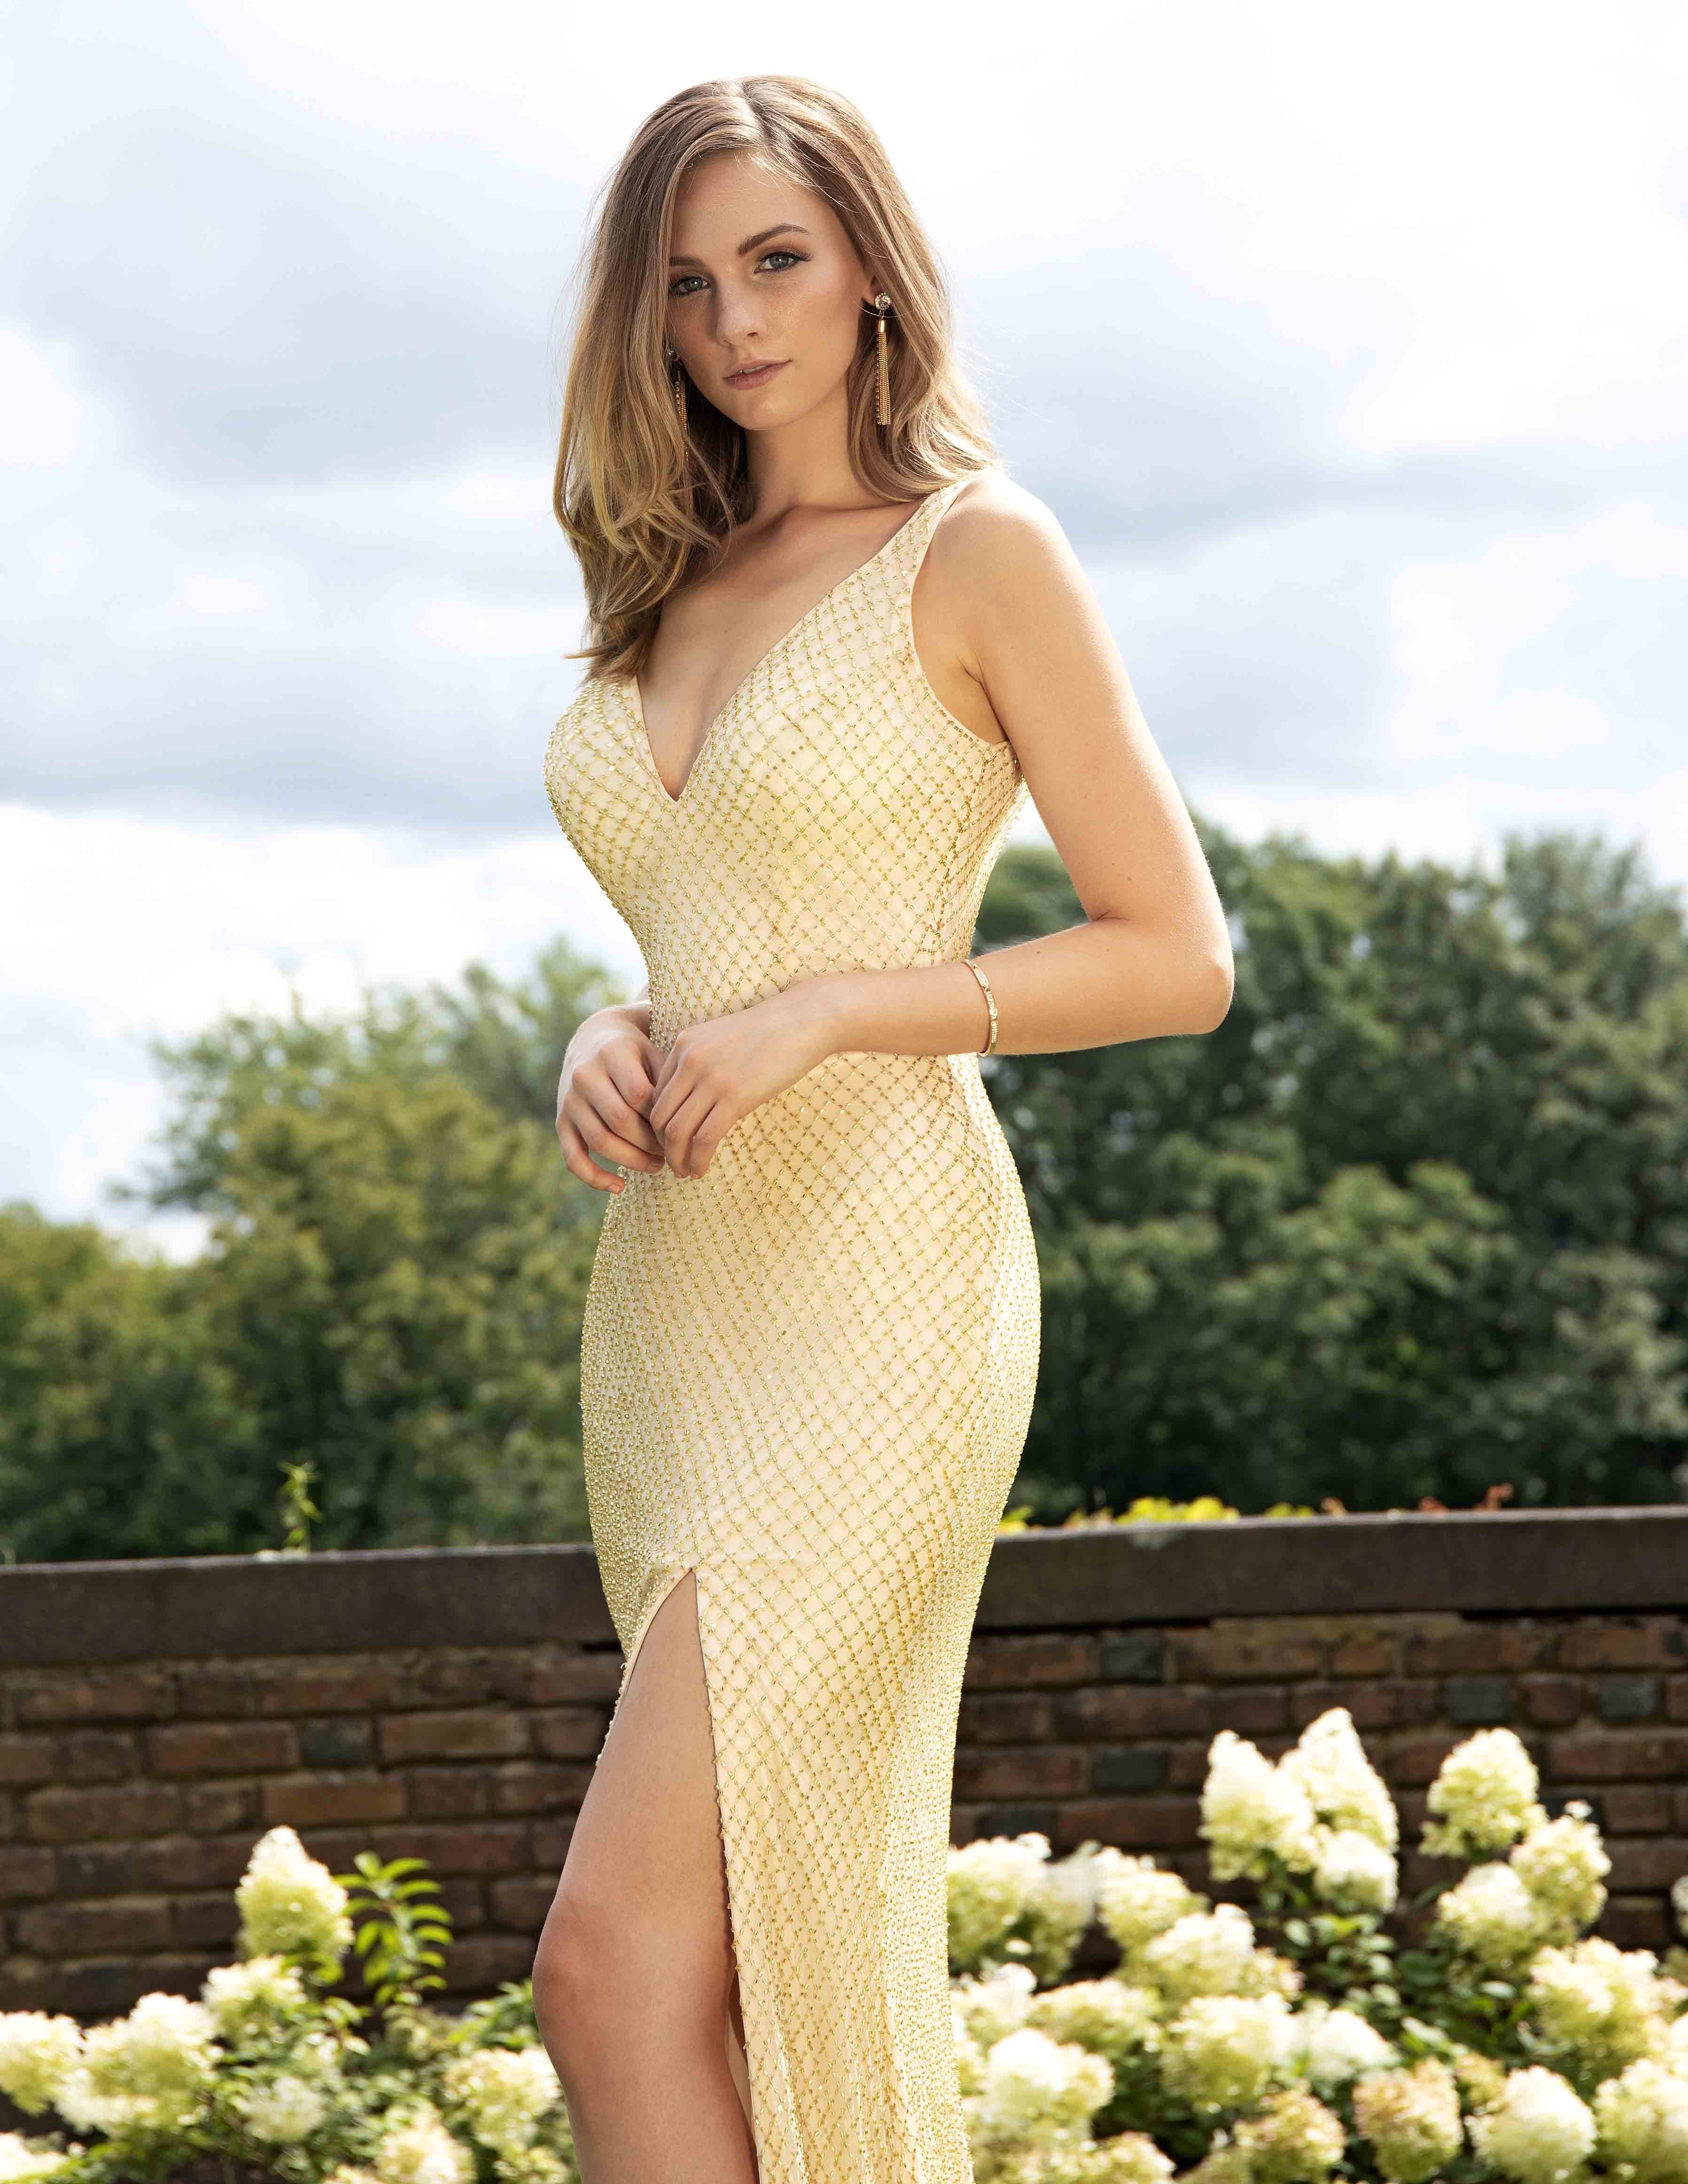 Primavera Couture - 3298 Embellished Deep Vneck Sheath Dress With Slit In Neutral and Gold